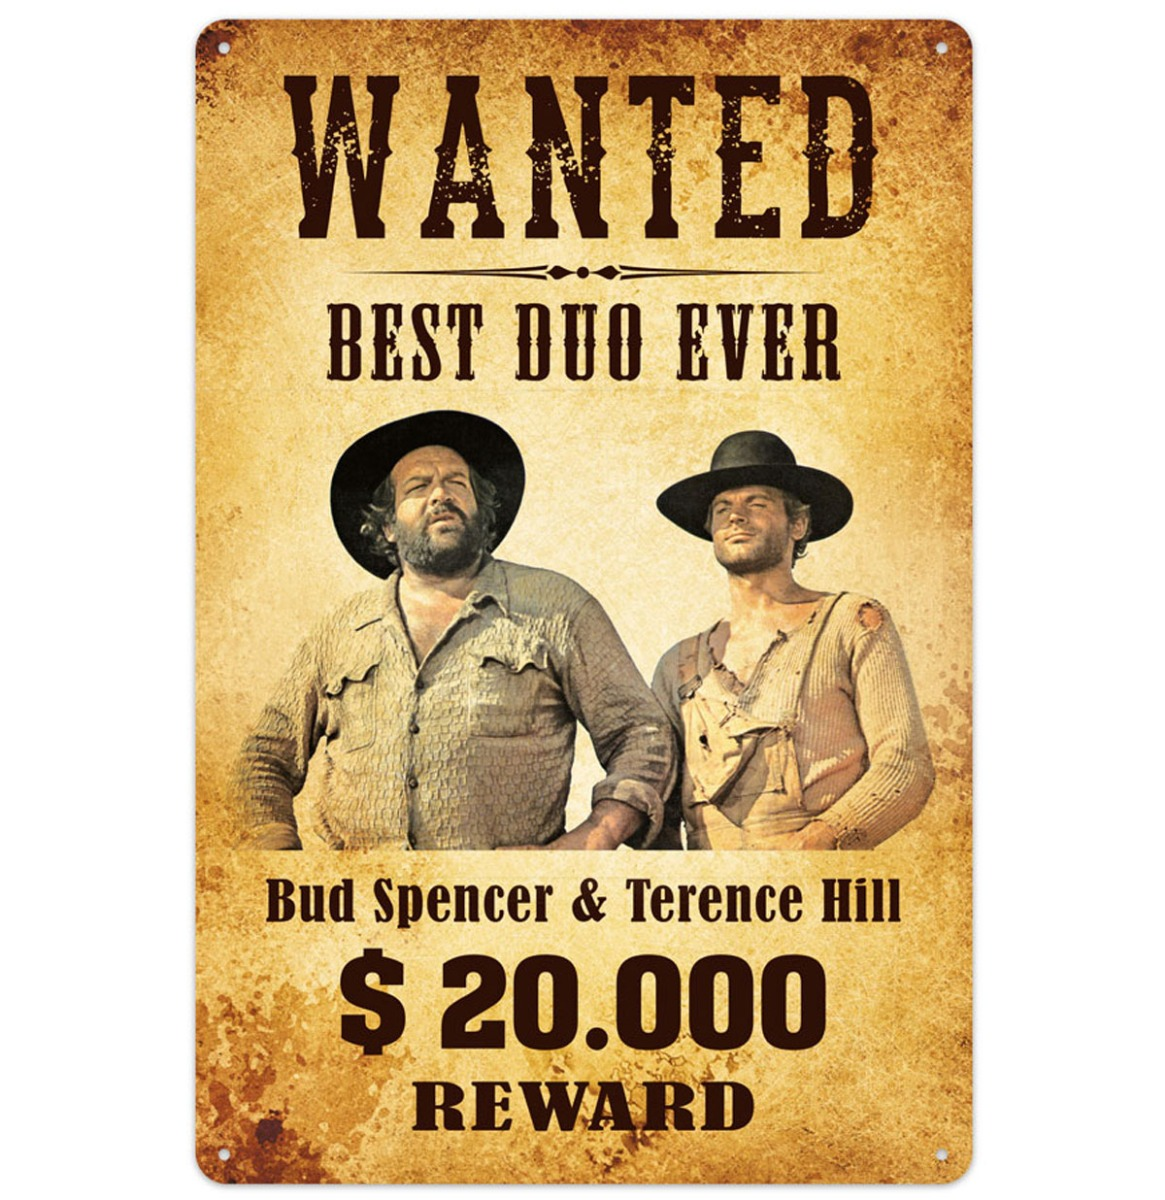 Bud Spencer Terence Hill Best Duo Ever 20.000 Reward Metalen Bord 20 x 30 cm